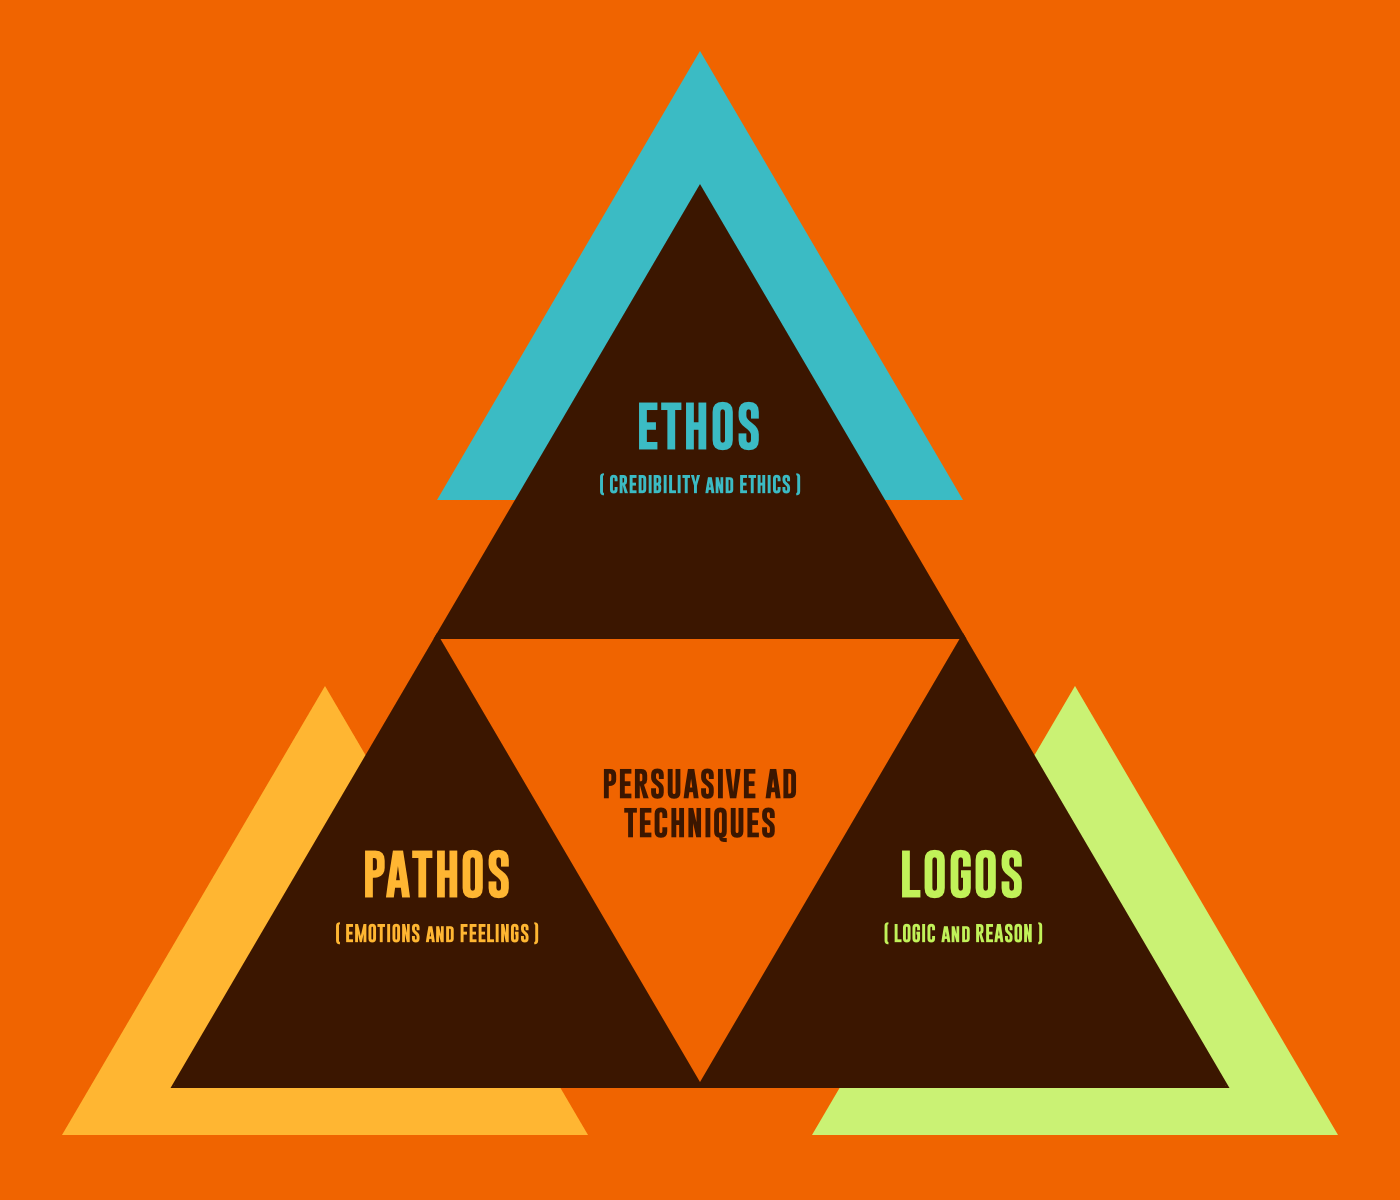 who came upwards along with ethos pathos logos